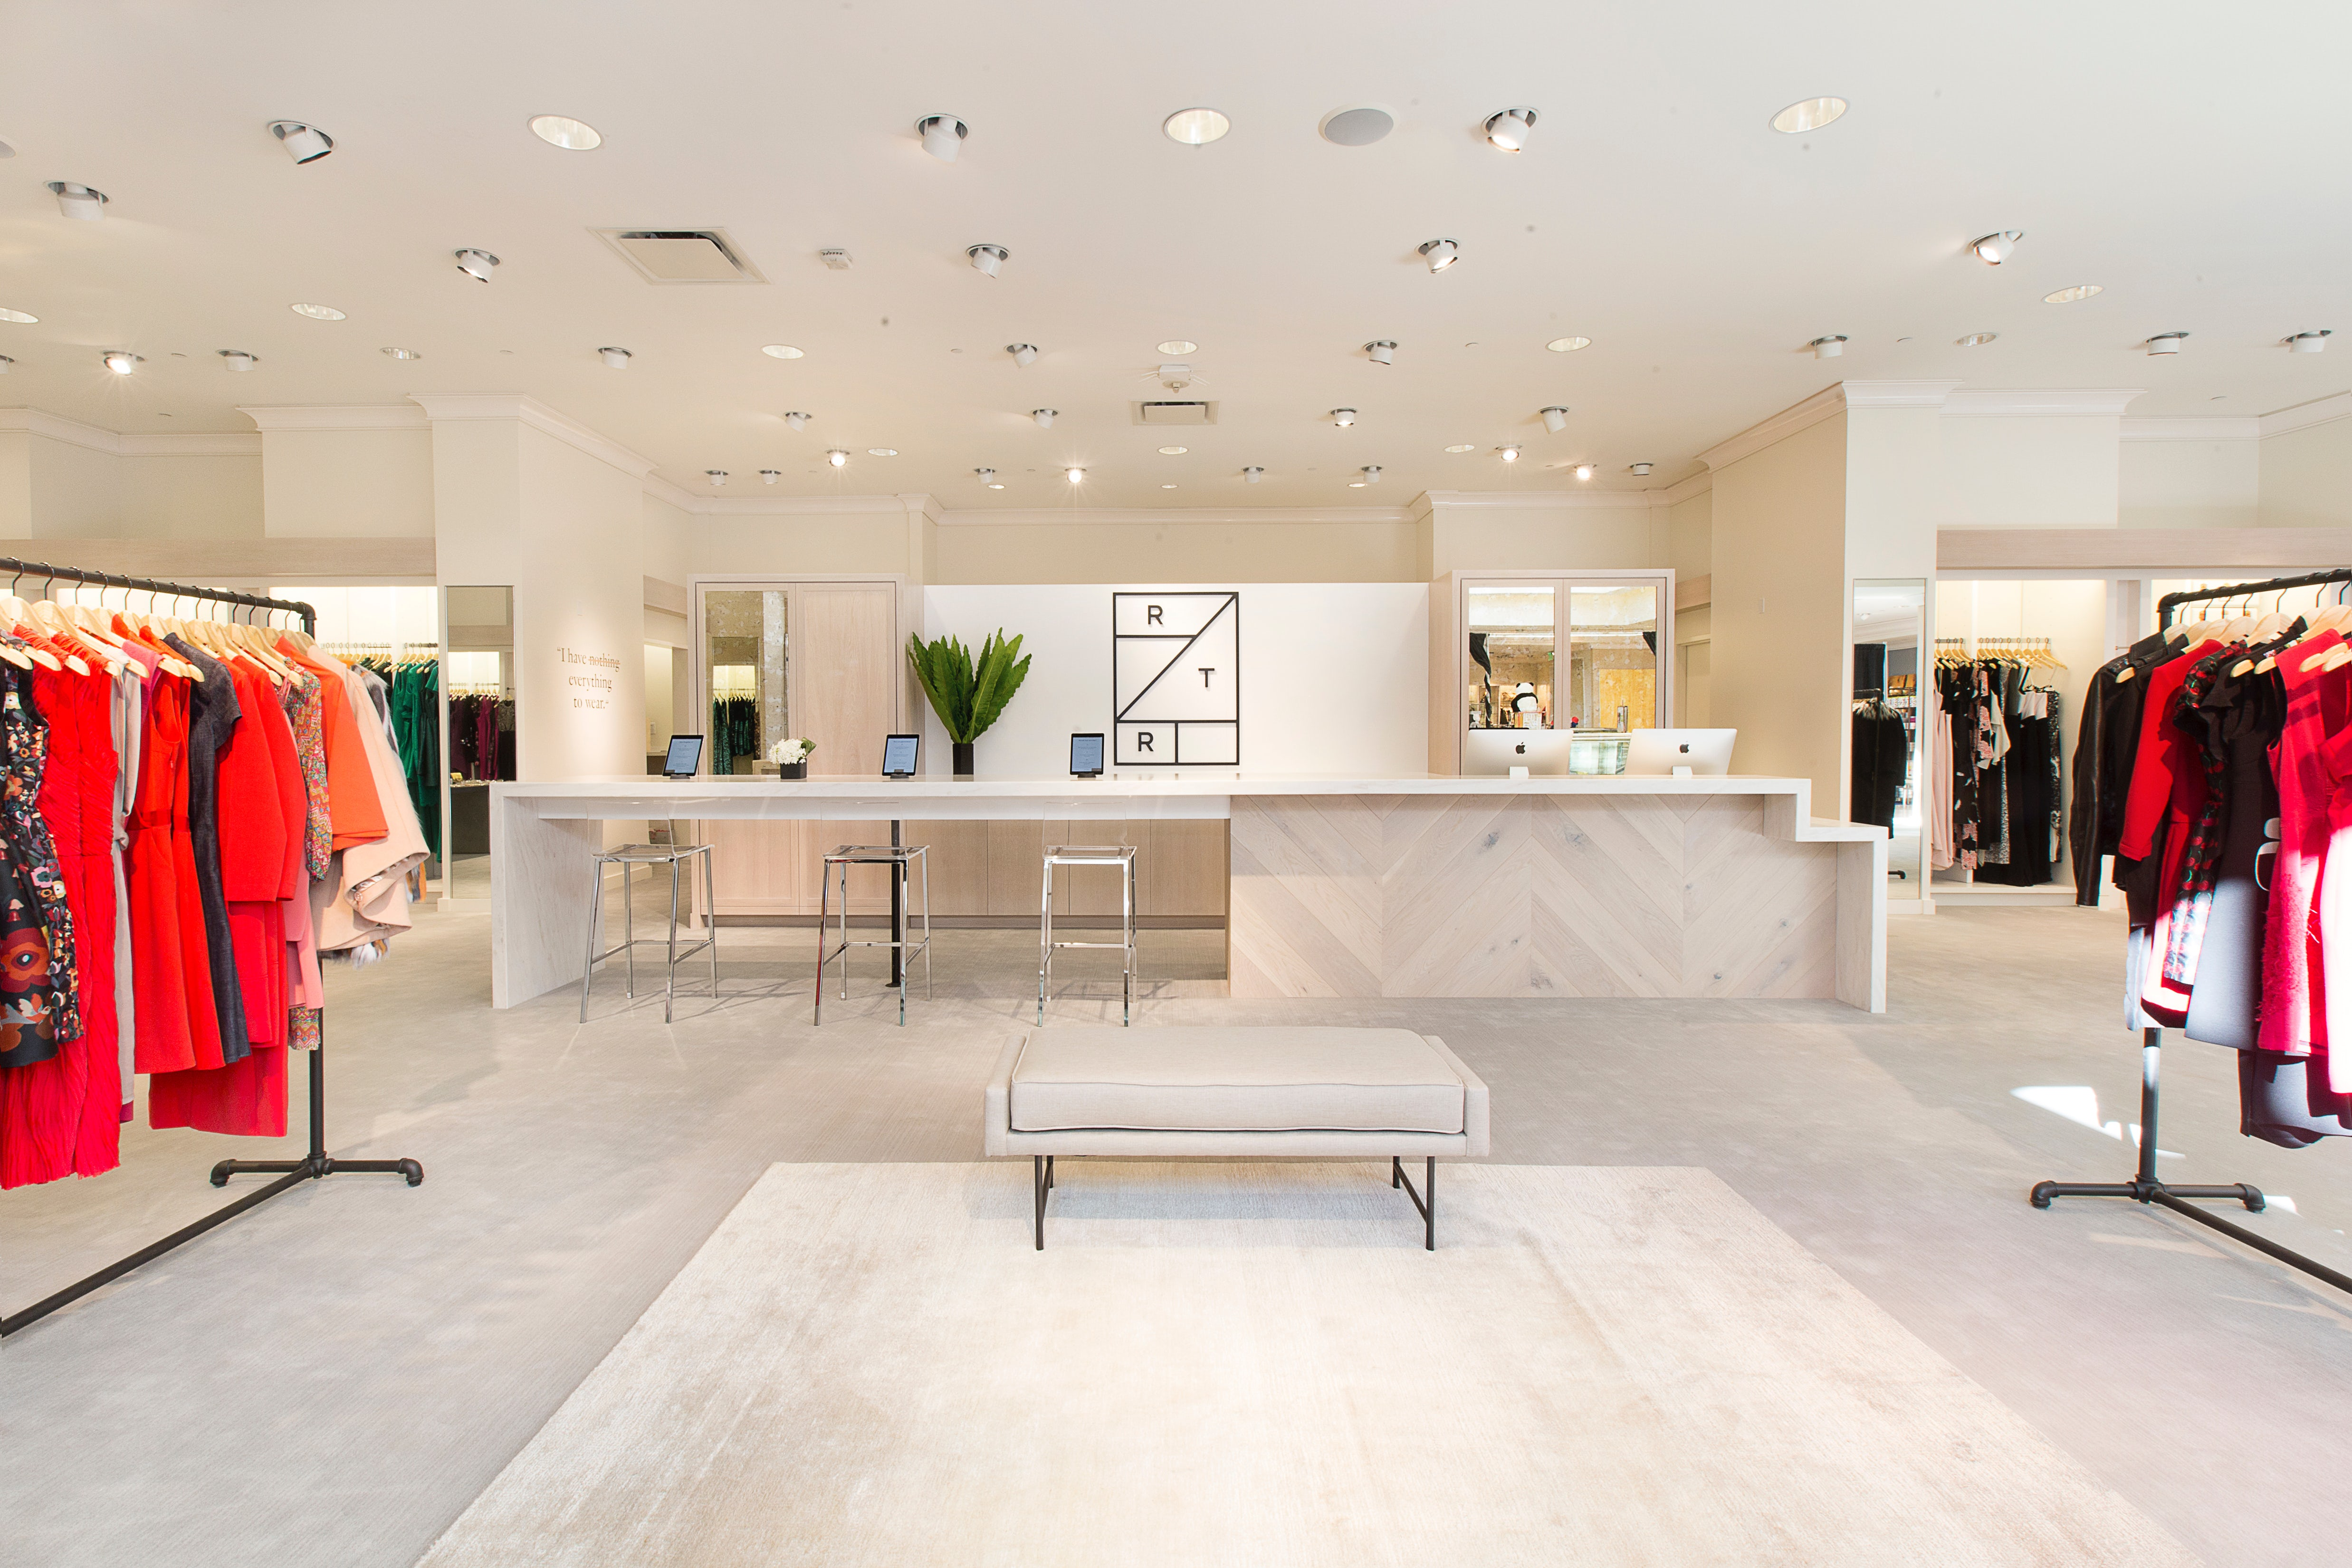 A Rent The Runway showroom | Source: Courtesy